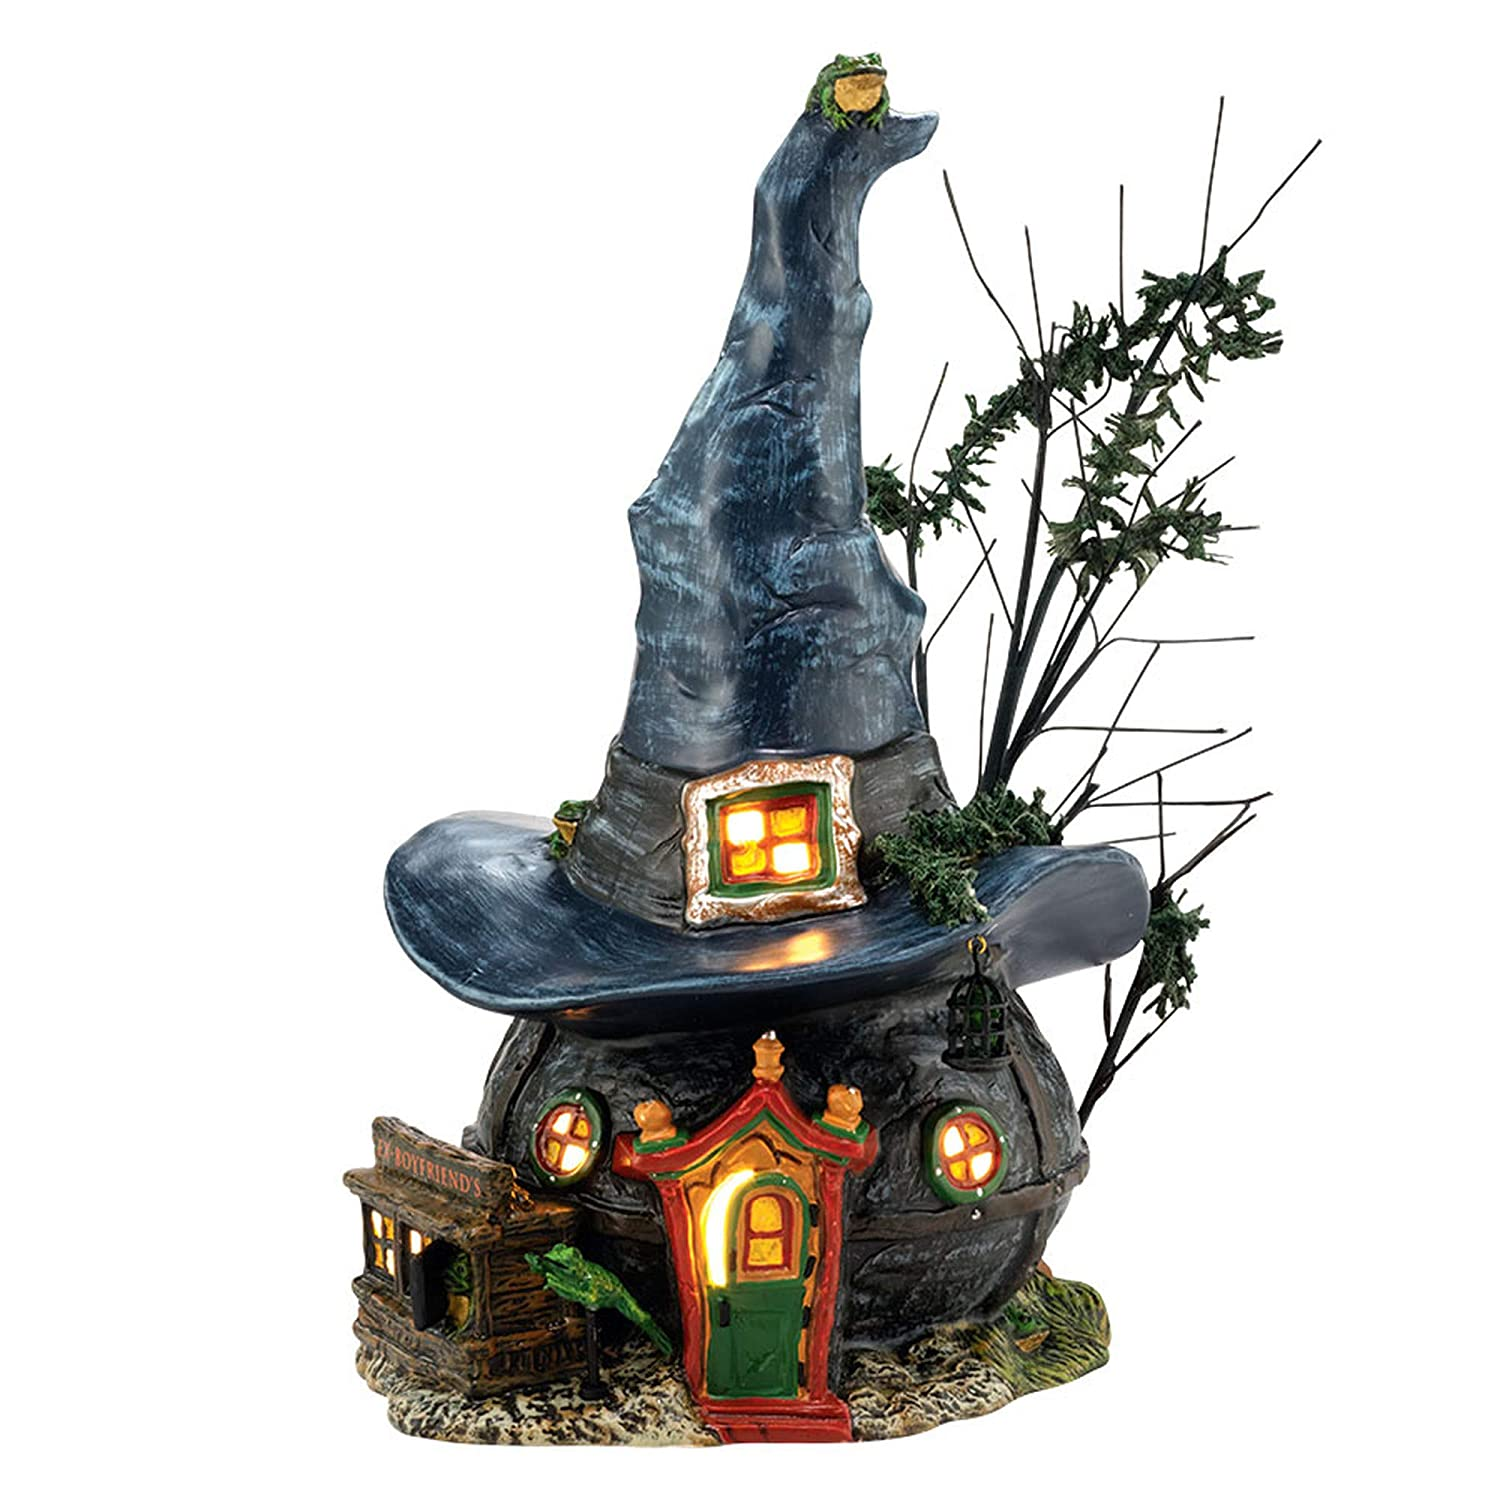 Department 56 Snow Village Halloween Toads and Frogs Witchcraft Haunt Lit House, 5.91 inch 4036591